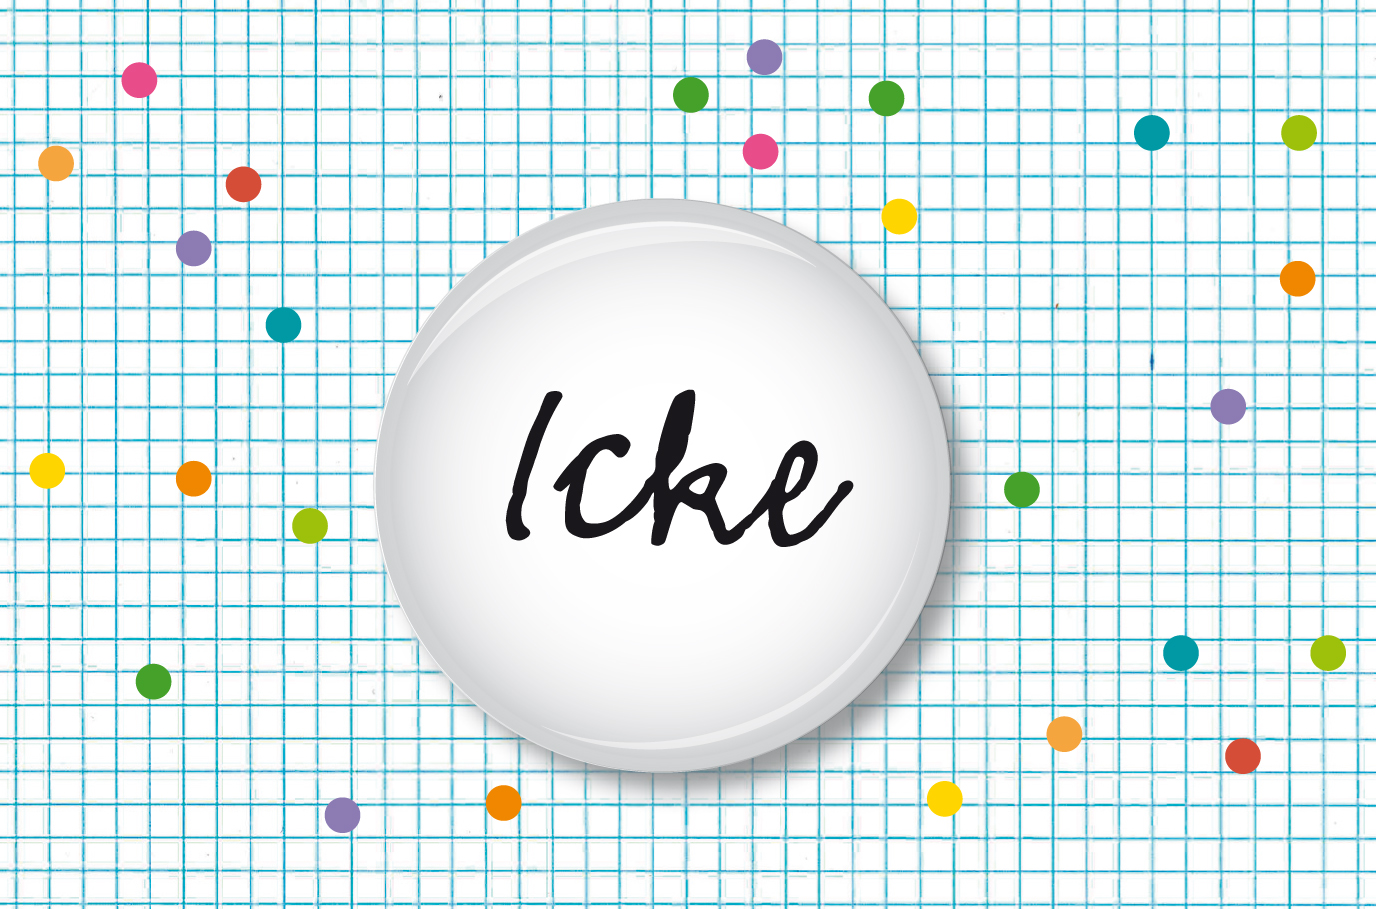 Button Icke - 1